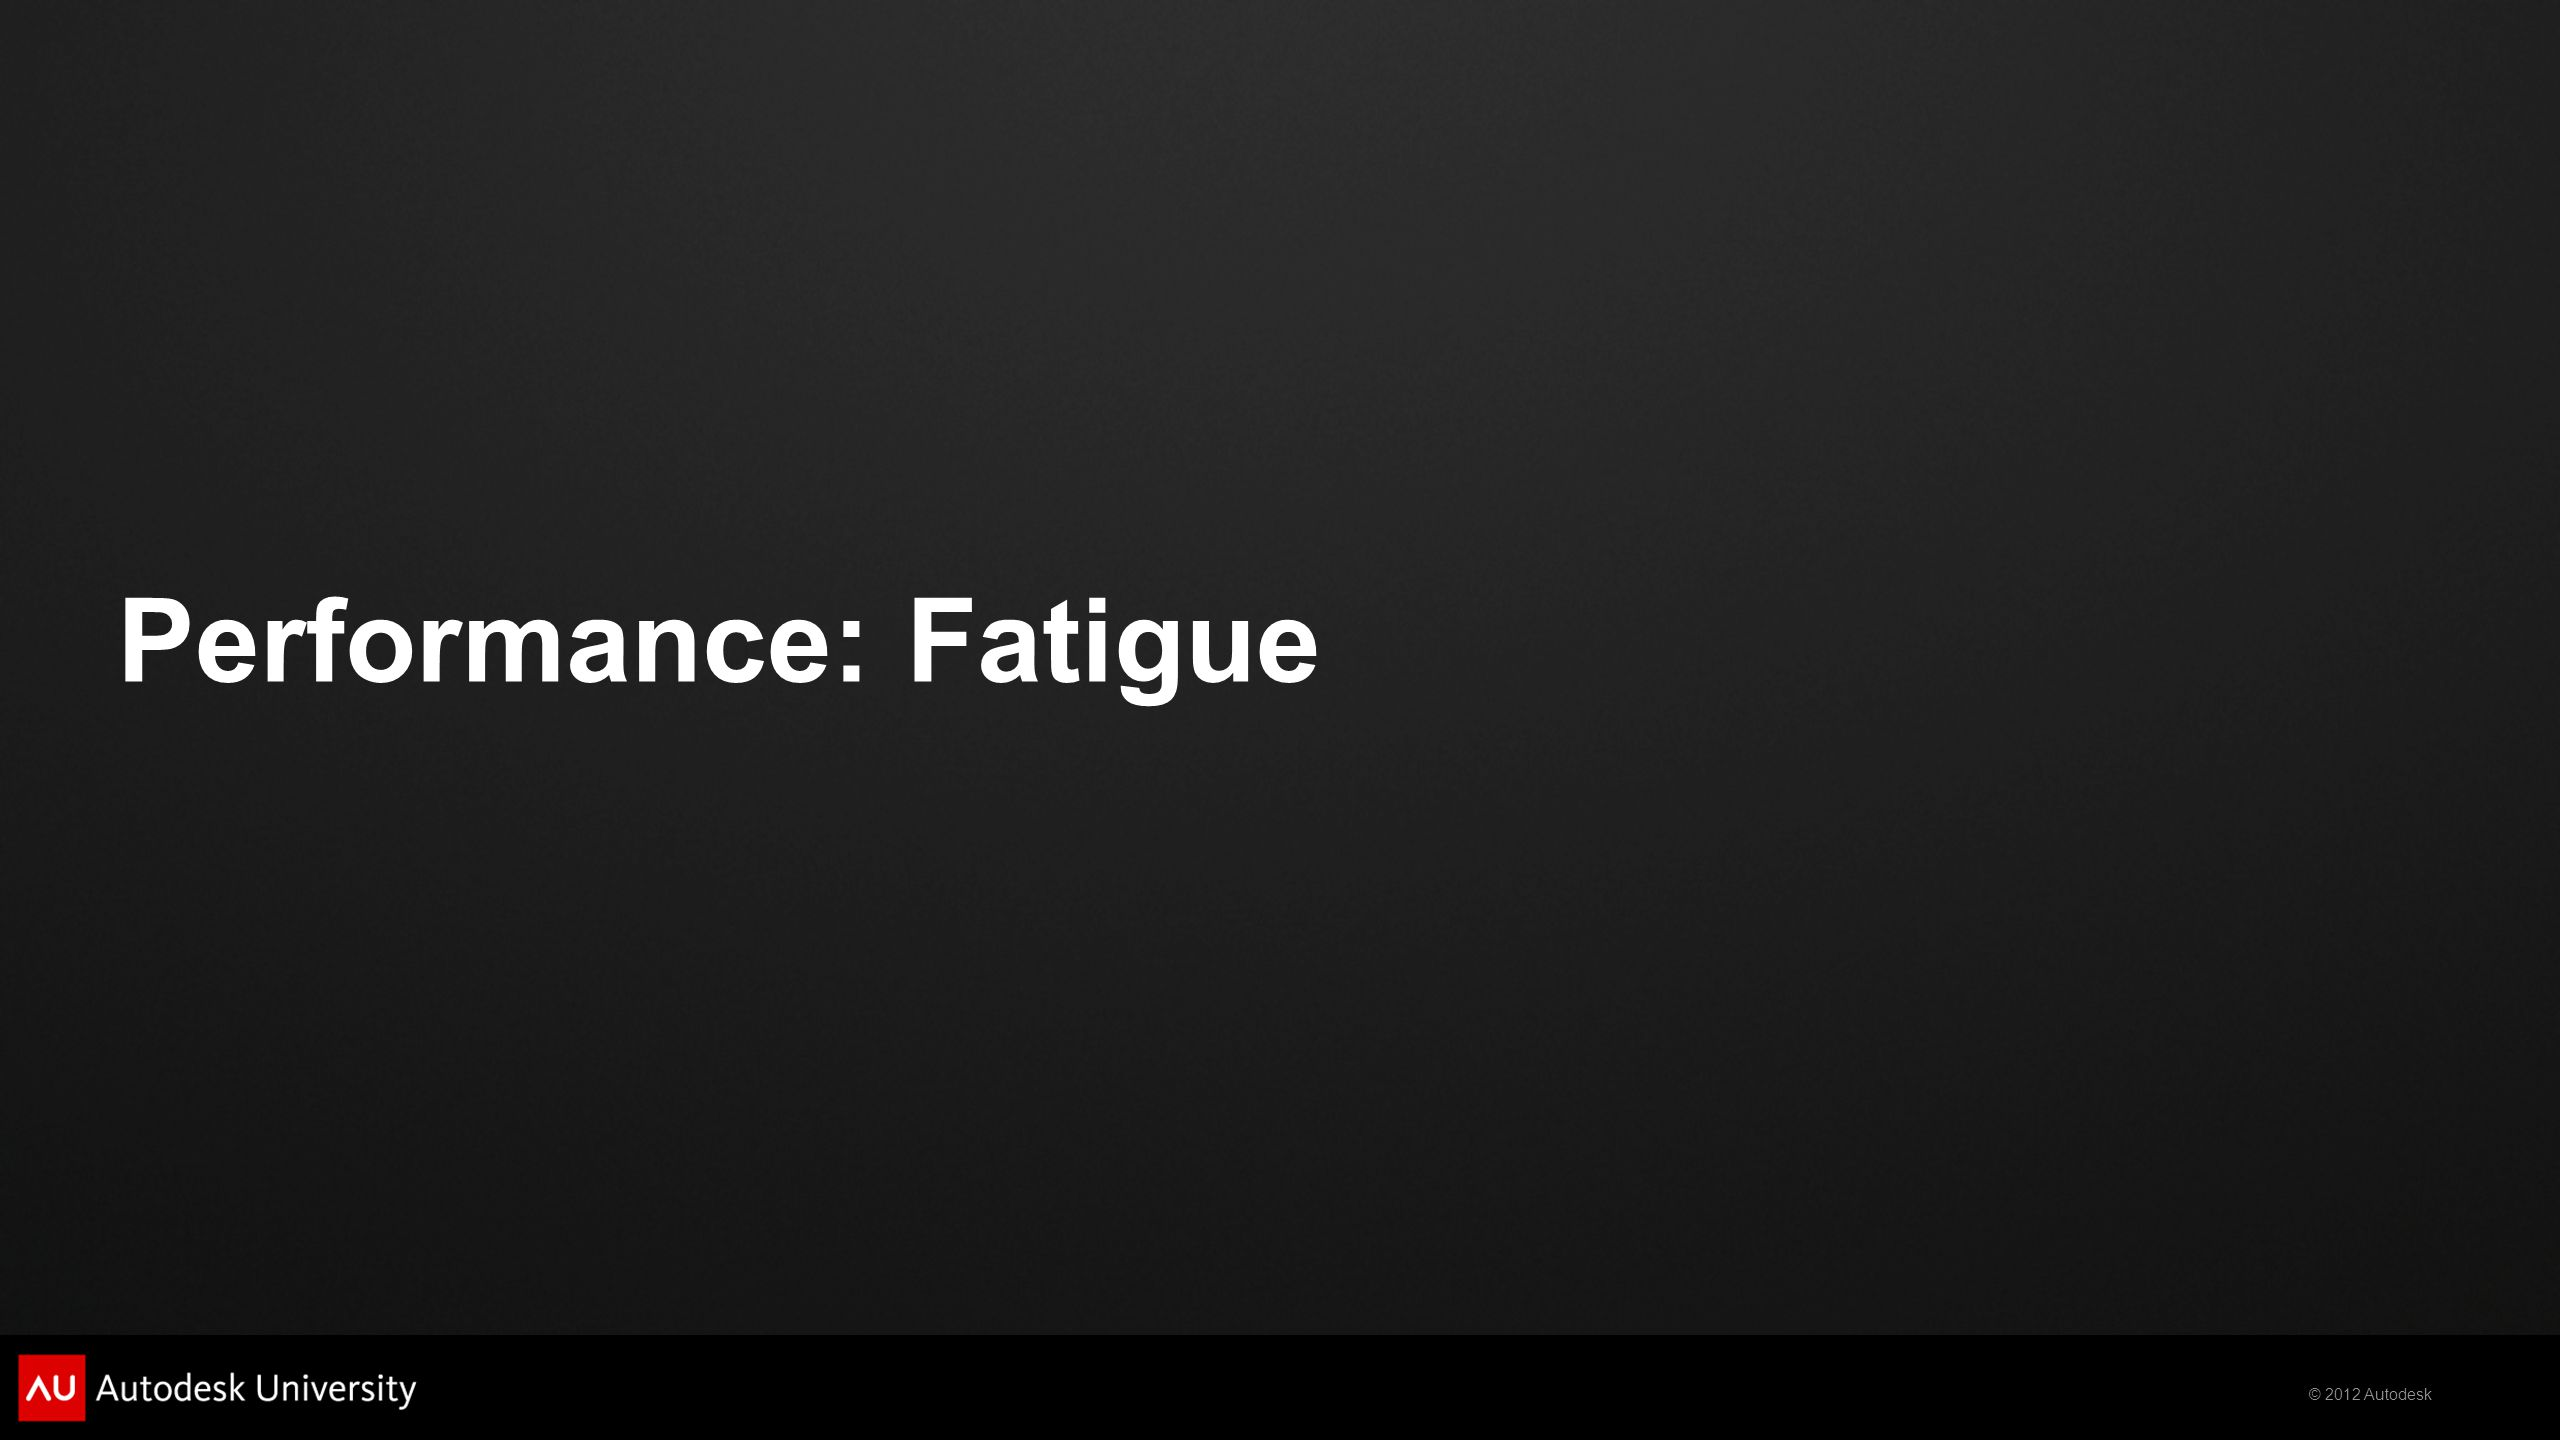 Performance: Fatigue